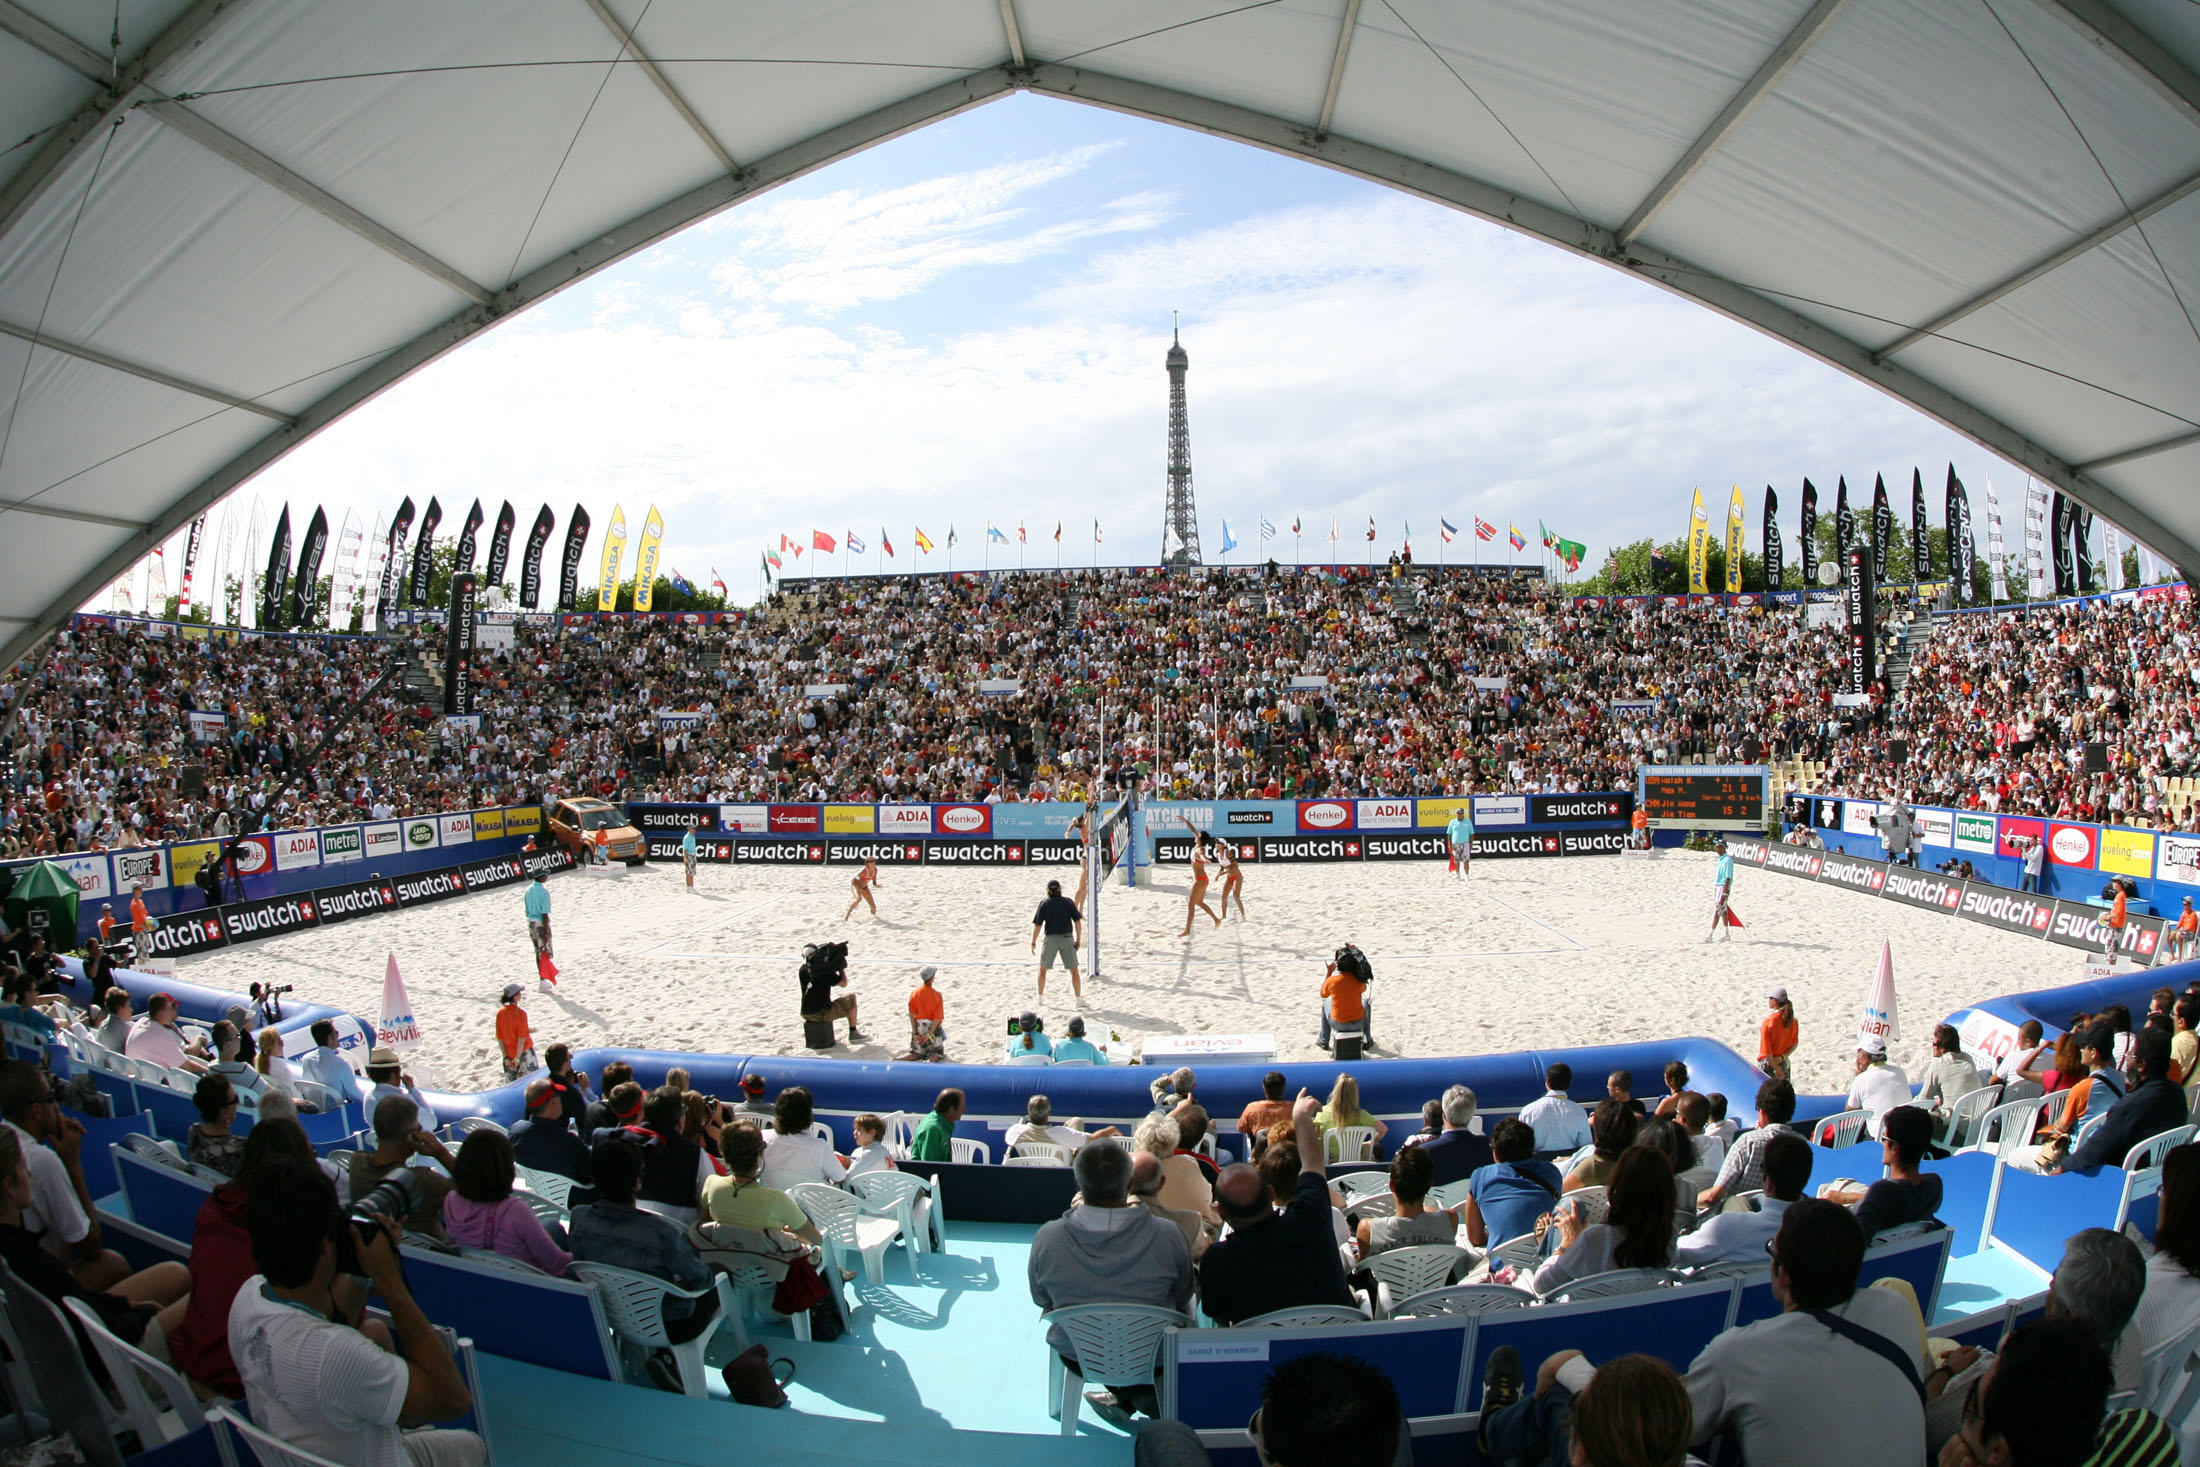 swatch fivb 1024x768 wallpapers - photo #33